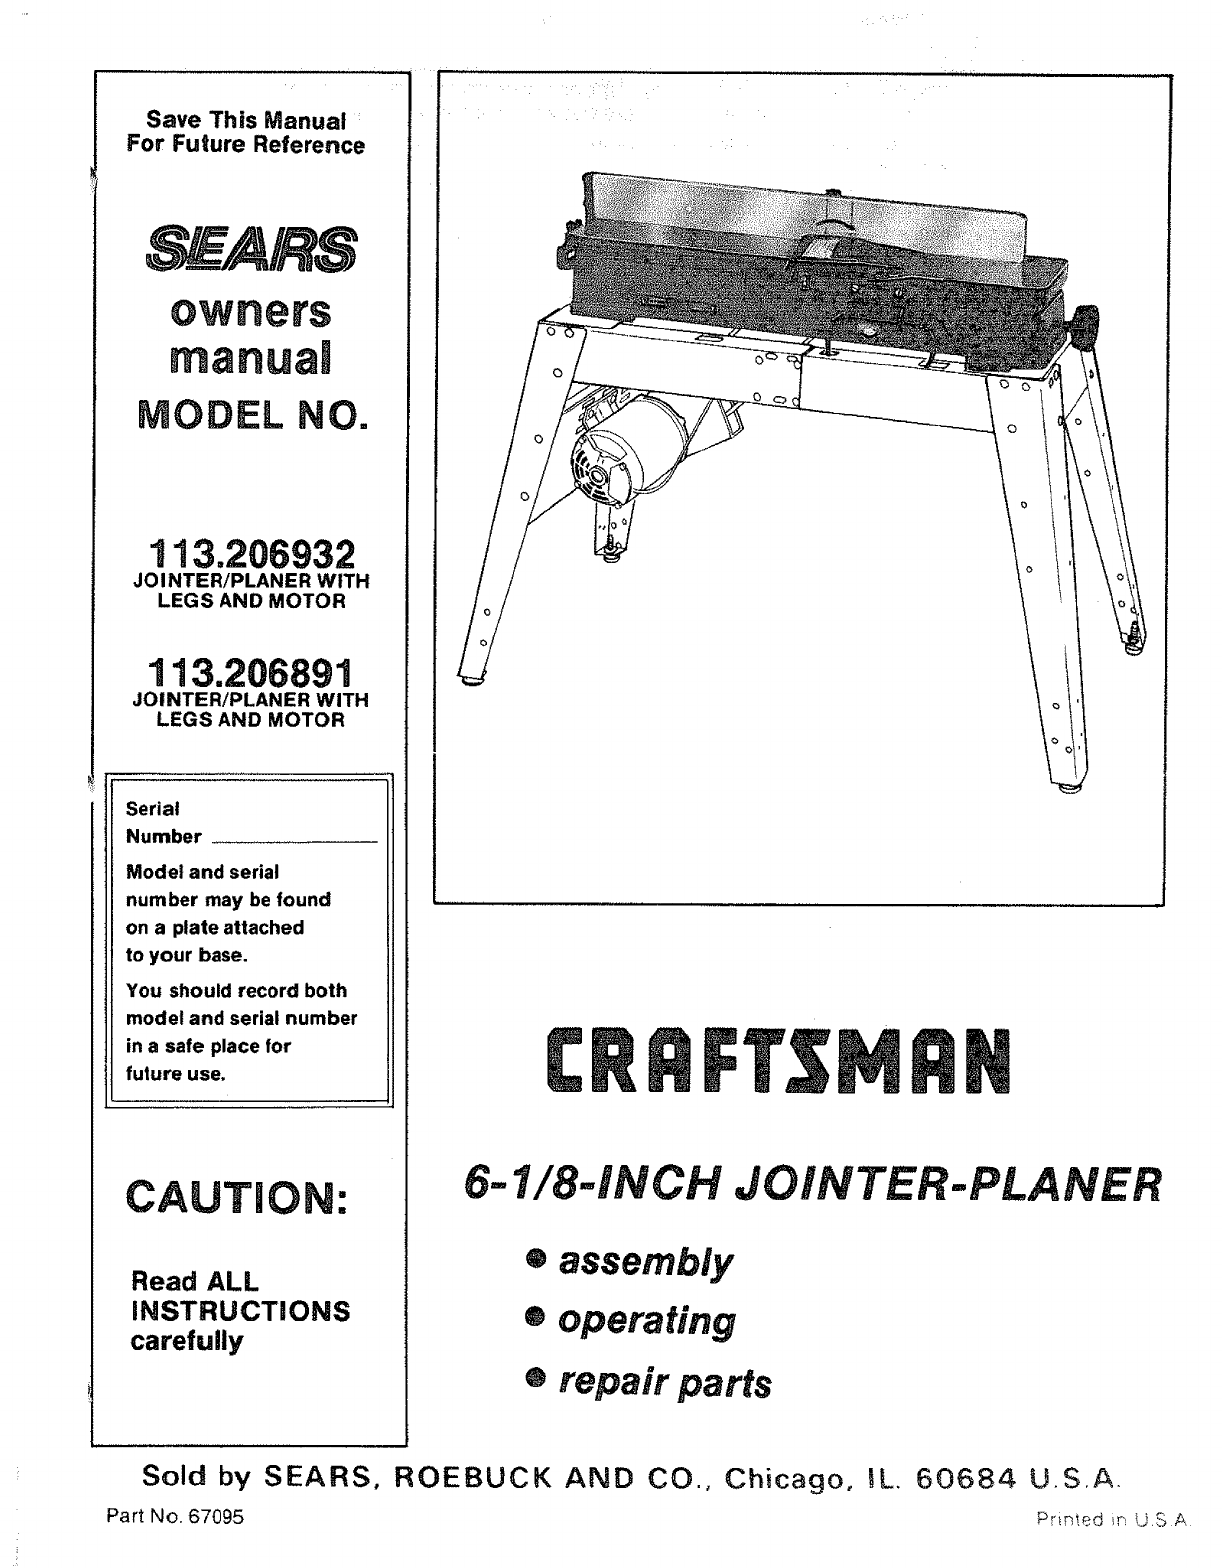 Craftsman 6 1 8 Jointer Planer Manual